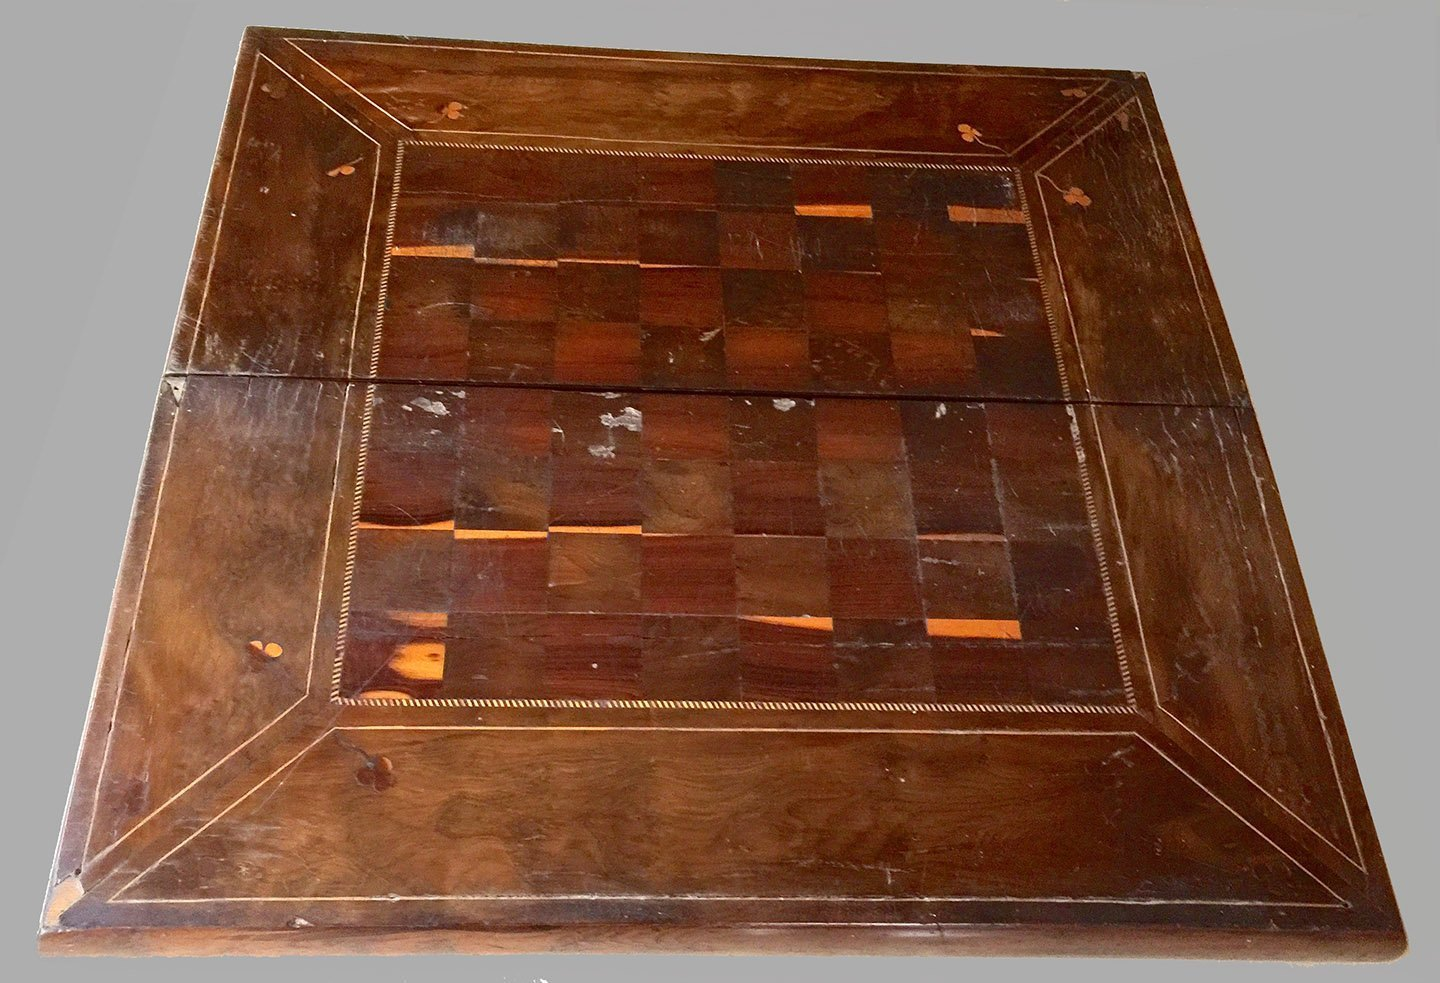 Killarney Chess Backgammon Board/Box